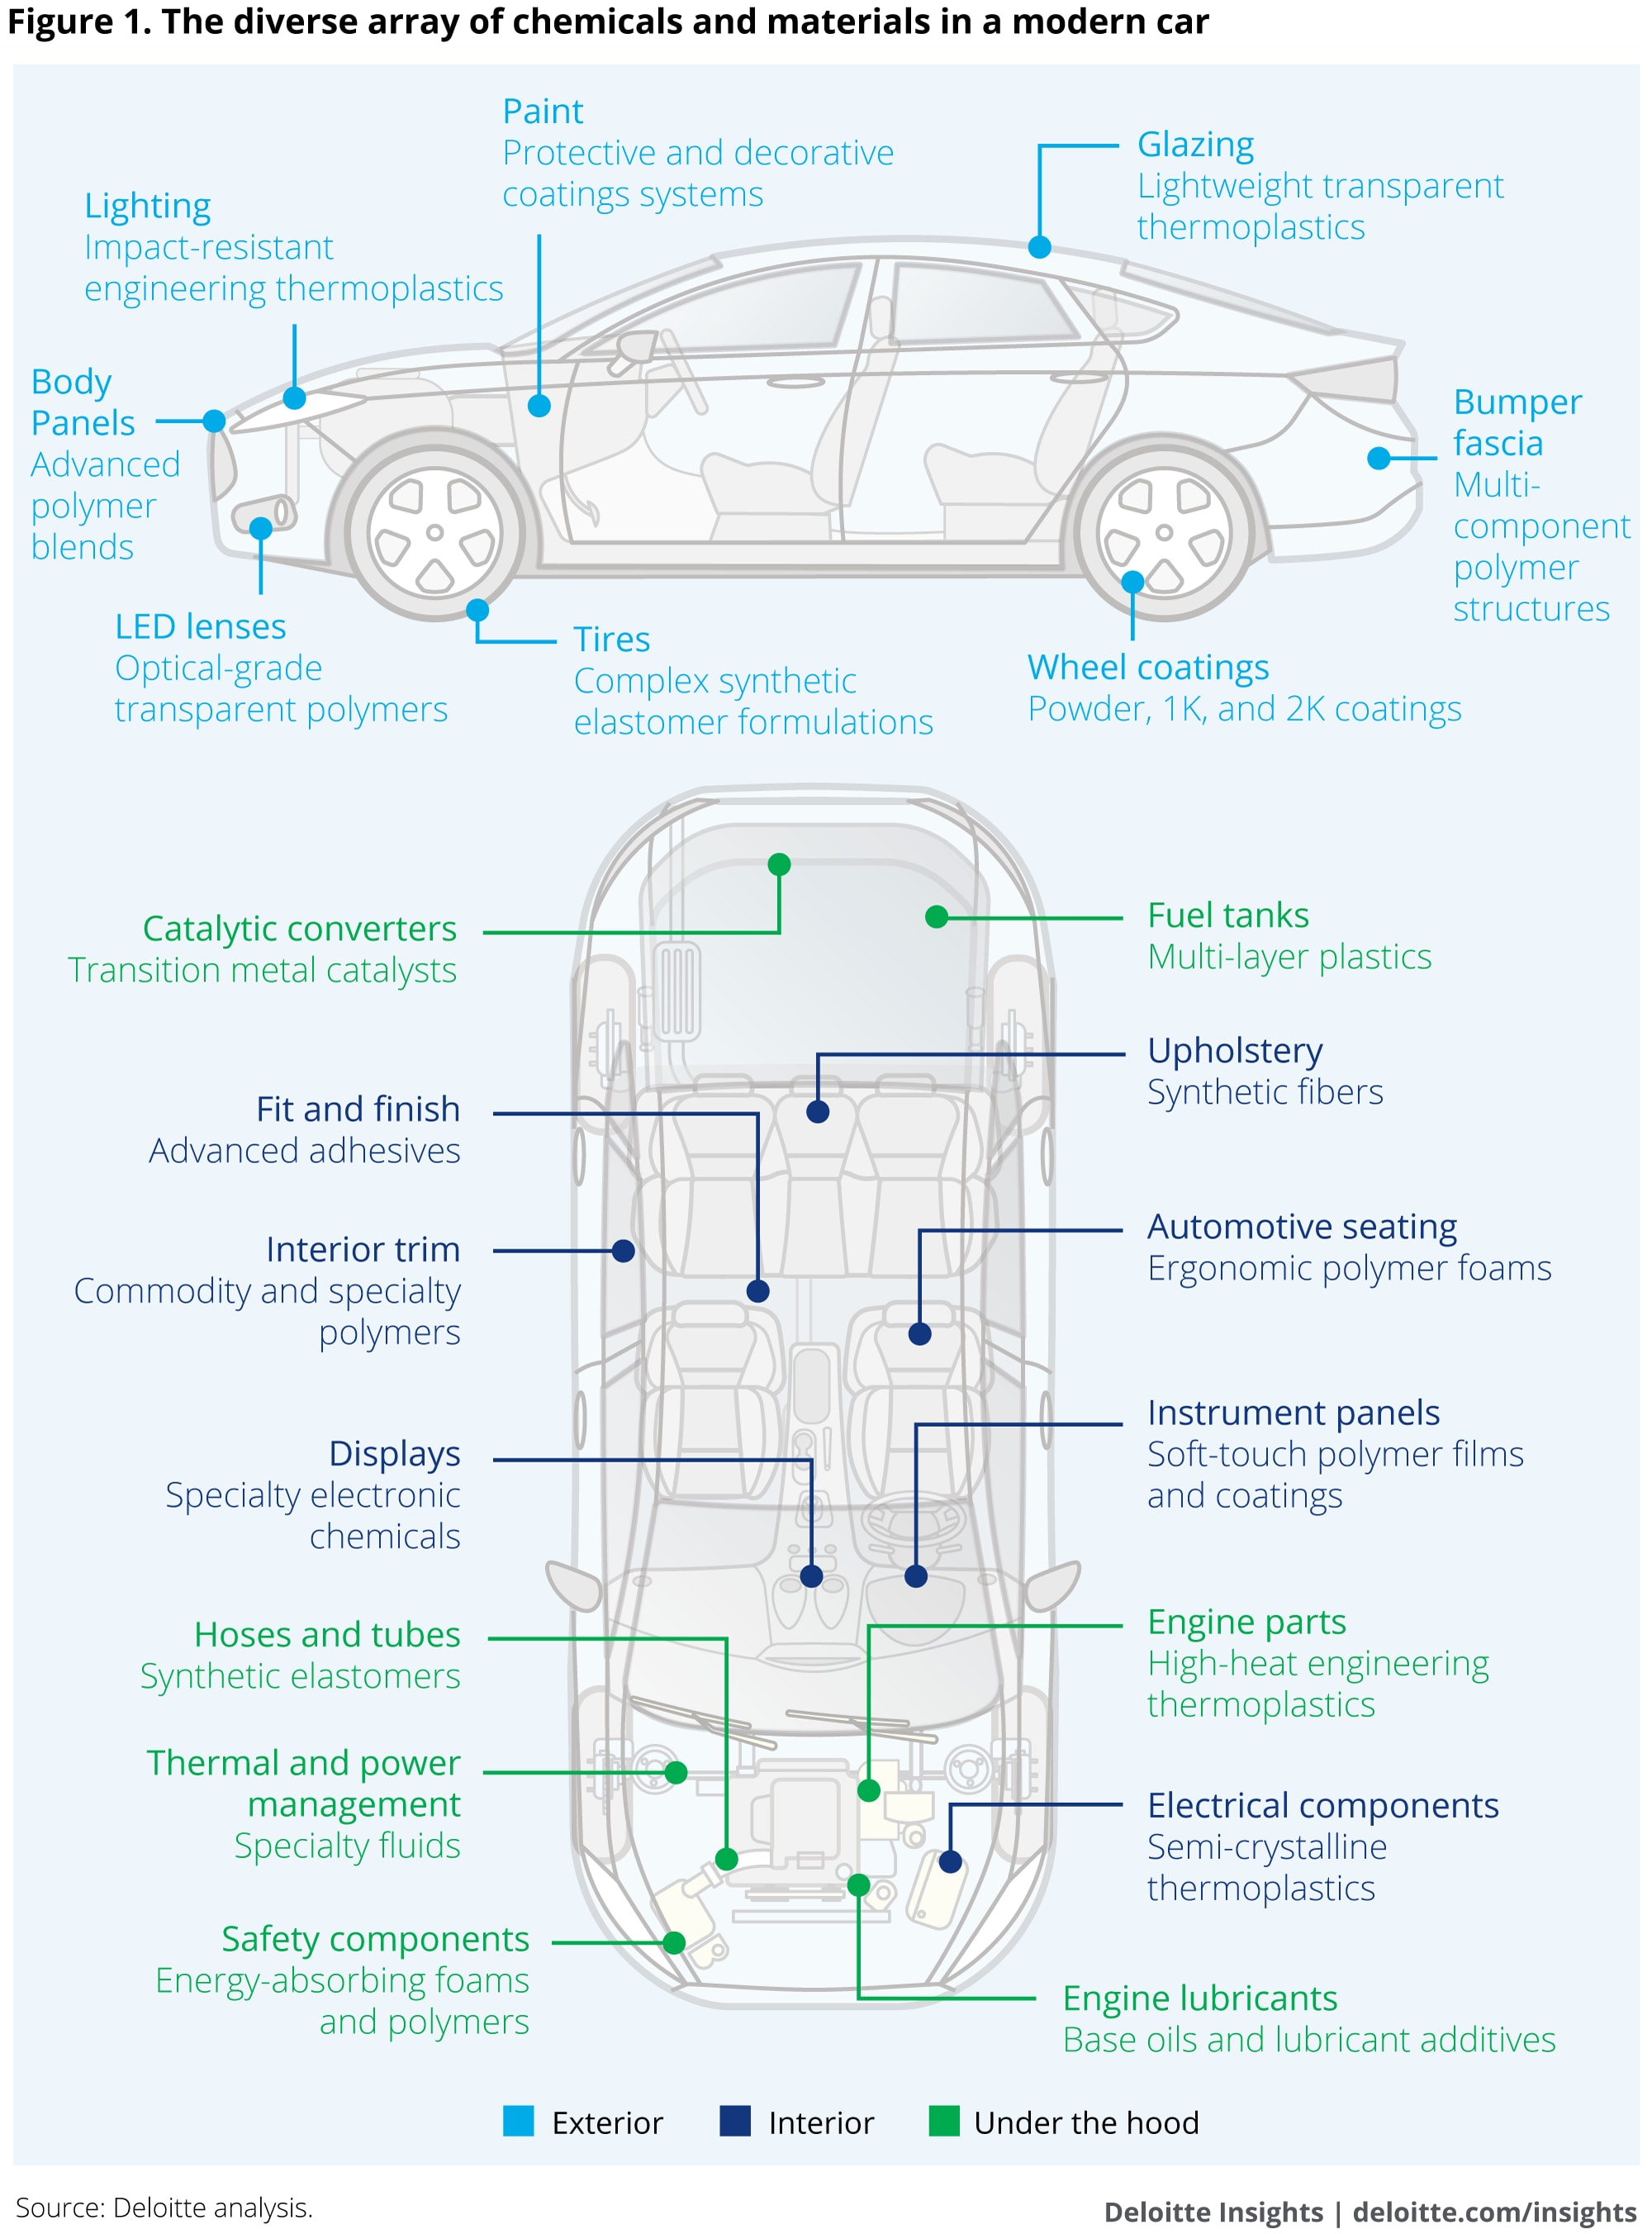 The diverse array of chemicals and materials in a modern car